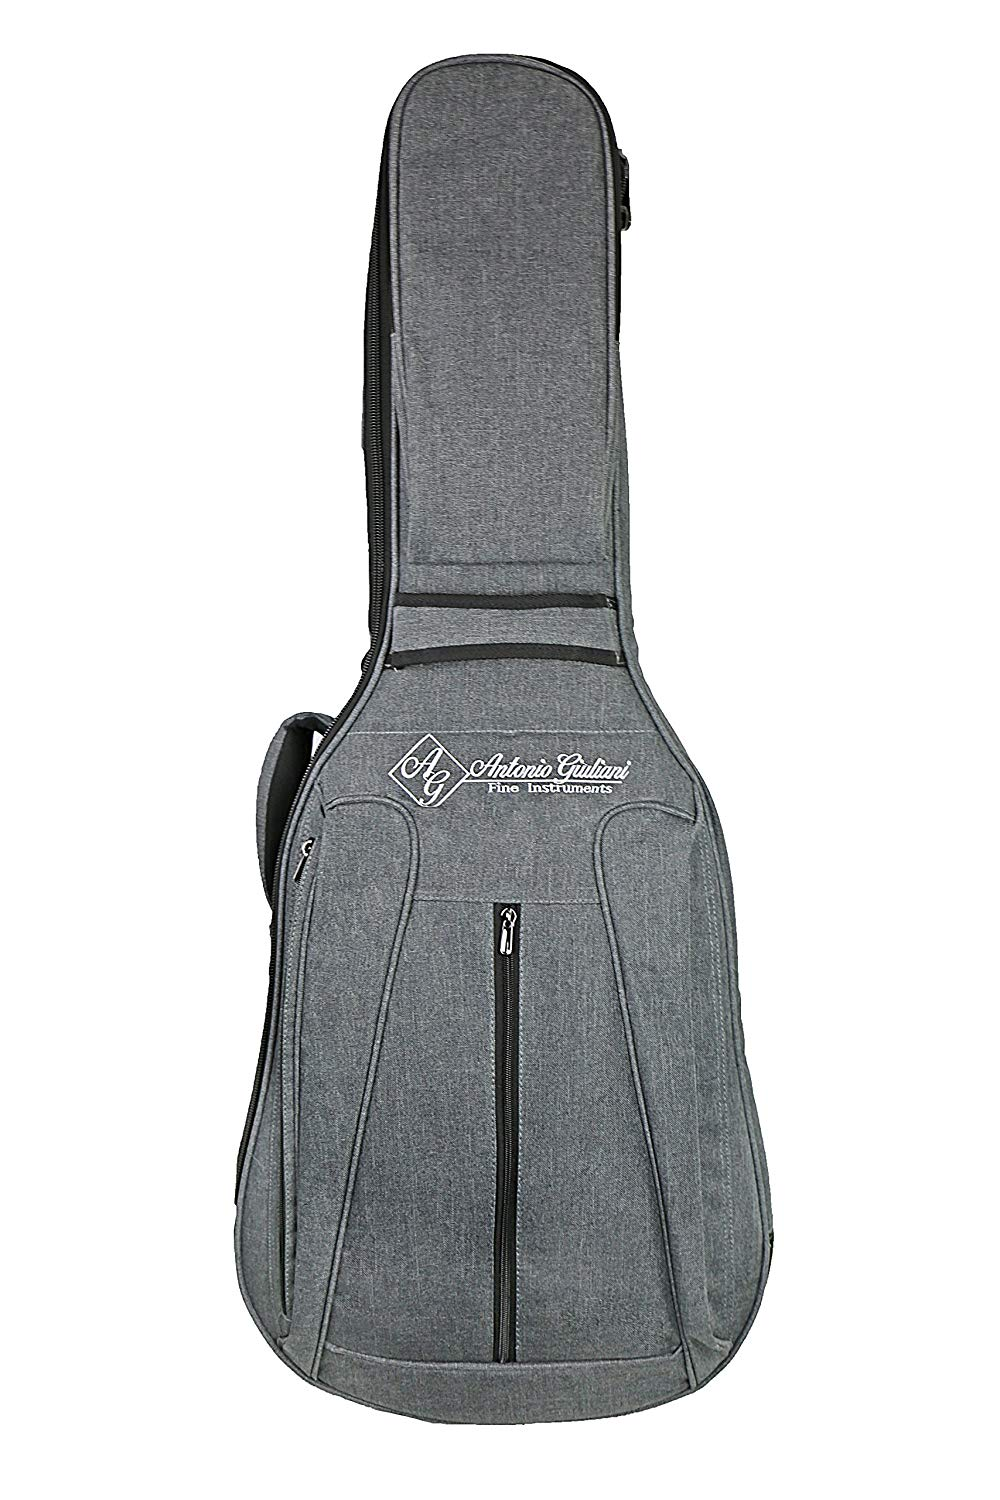 Antonio Giuliani Professional Padded Guitar Bag in action